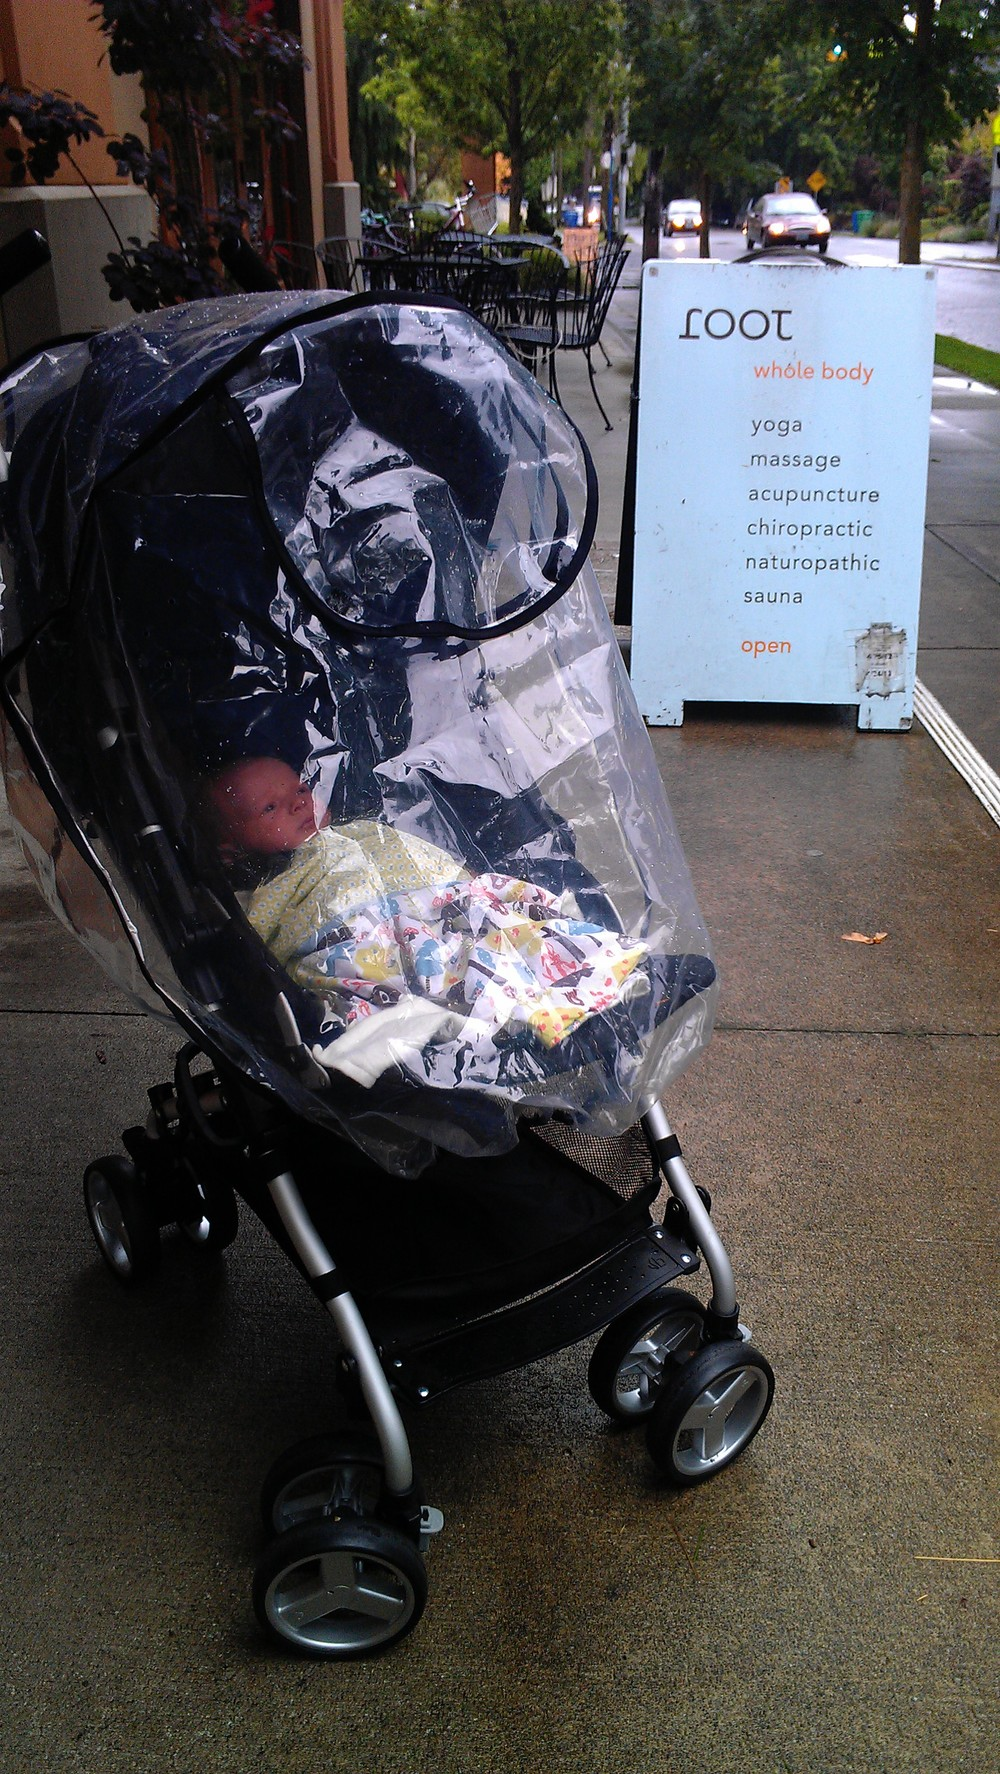 Took the stroller down to Root (didn't think I'd need the rain cover in June, but soo glad I had it!).